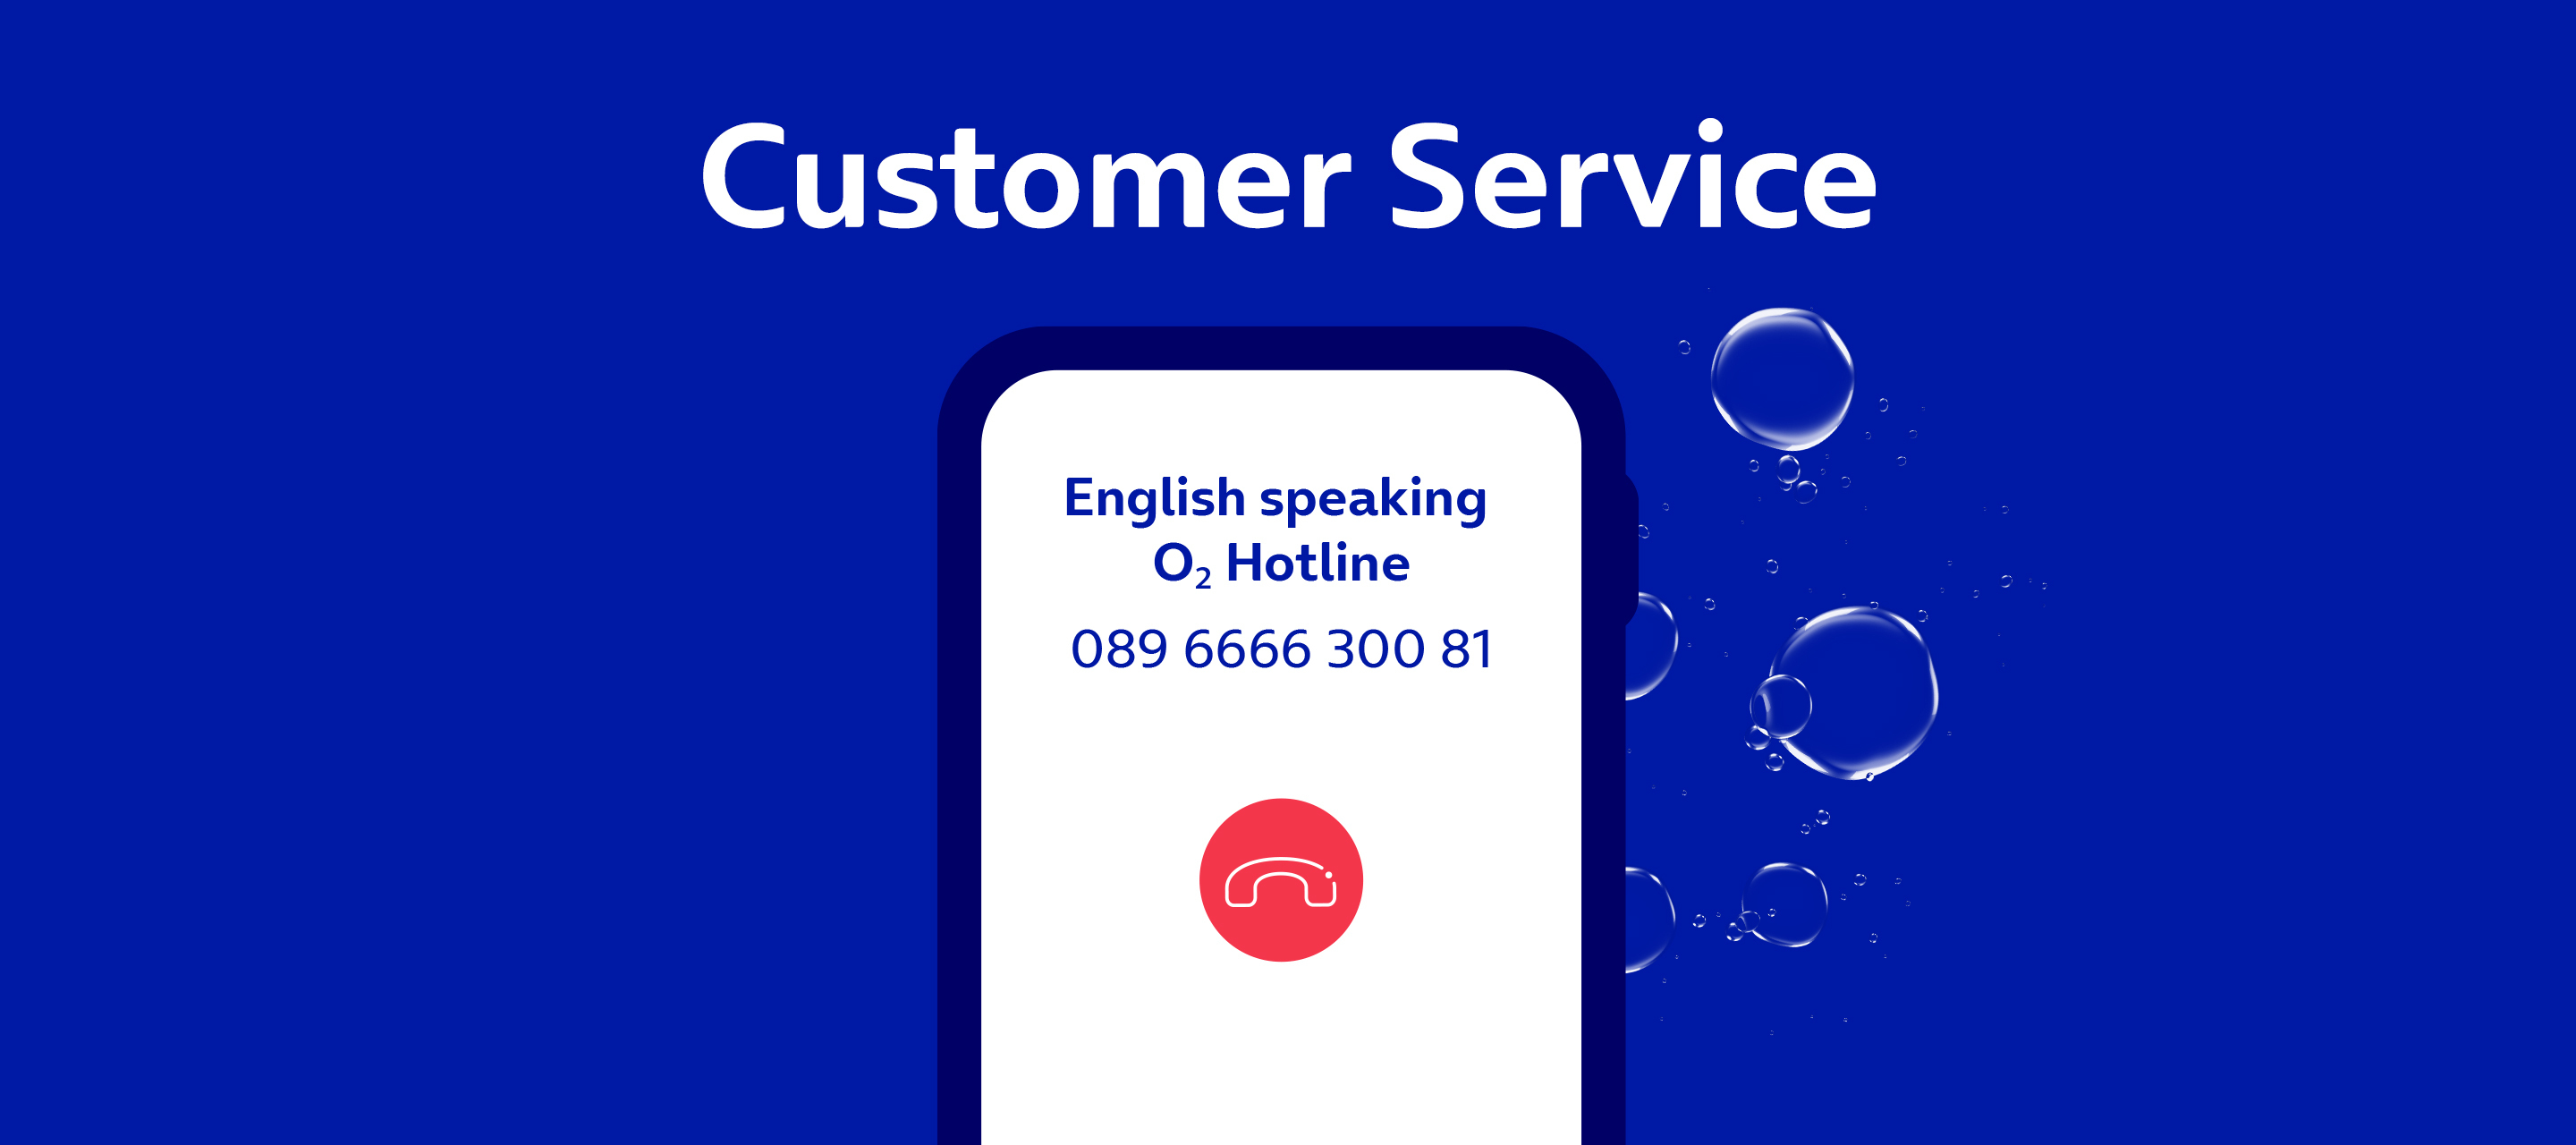 Welcome to our english speaking O₂ Hotline